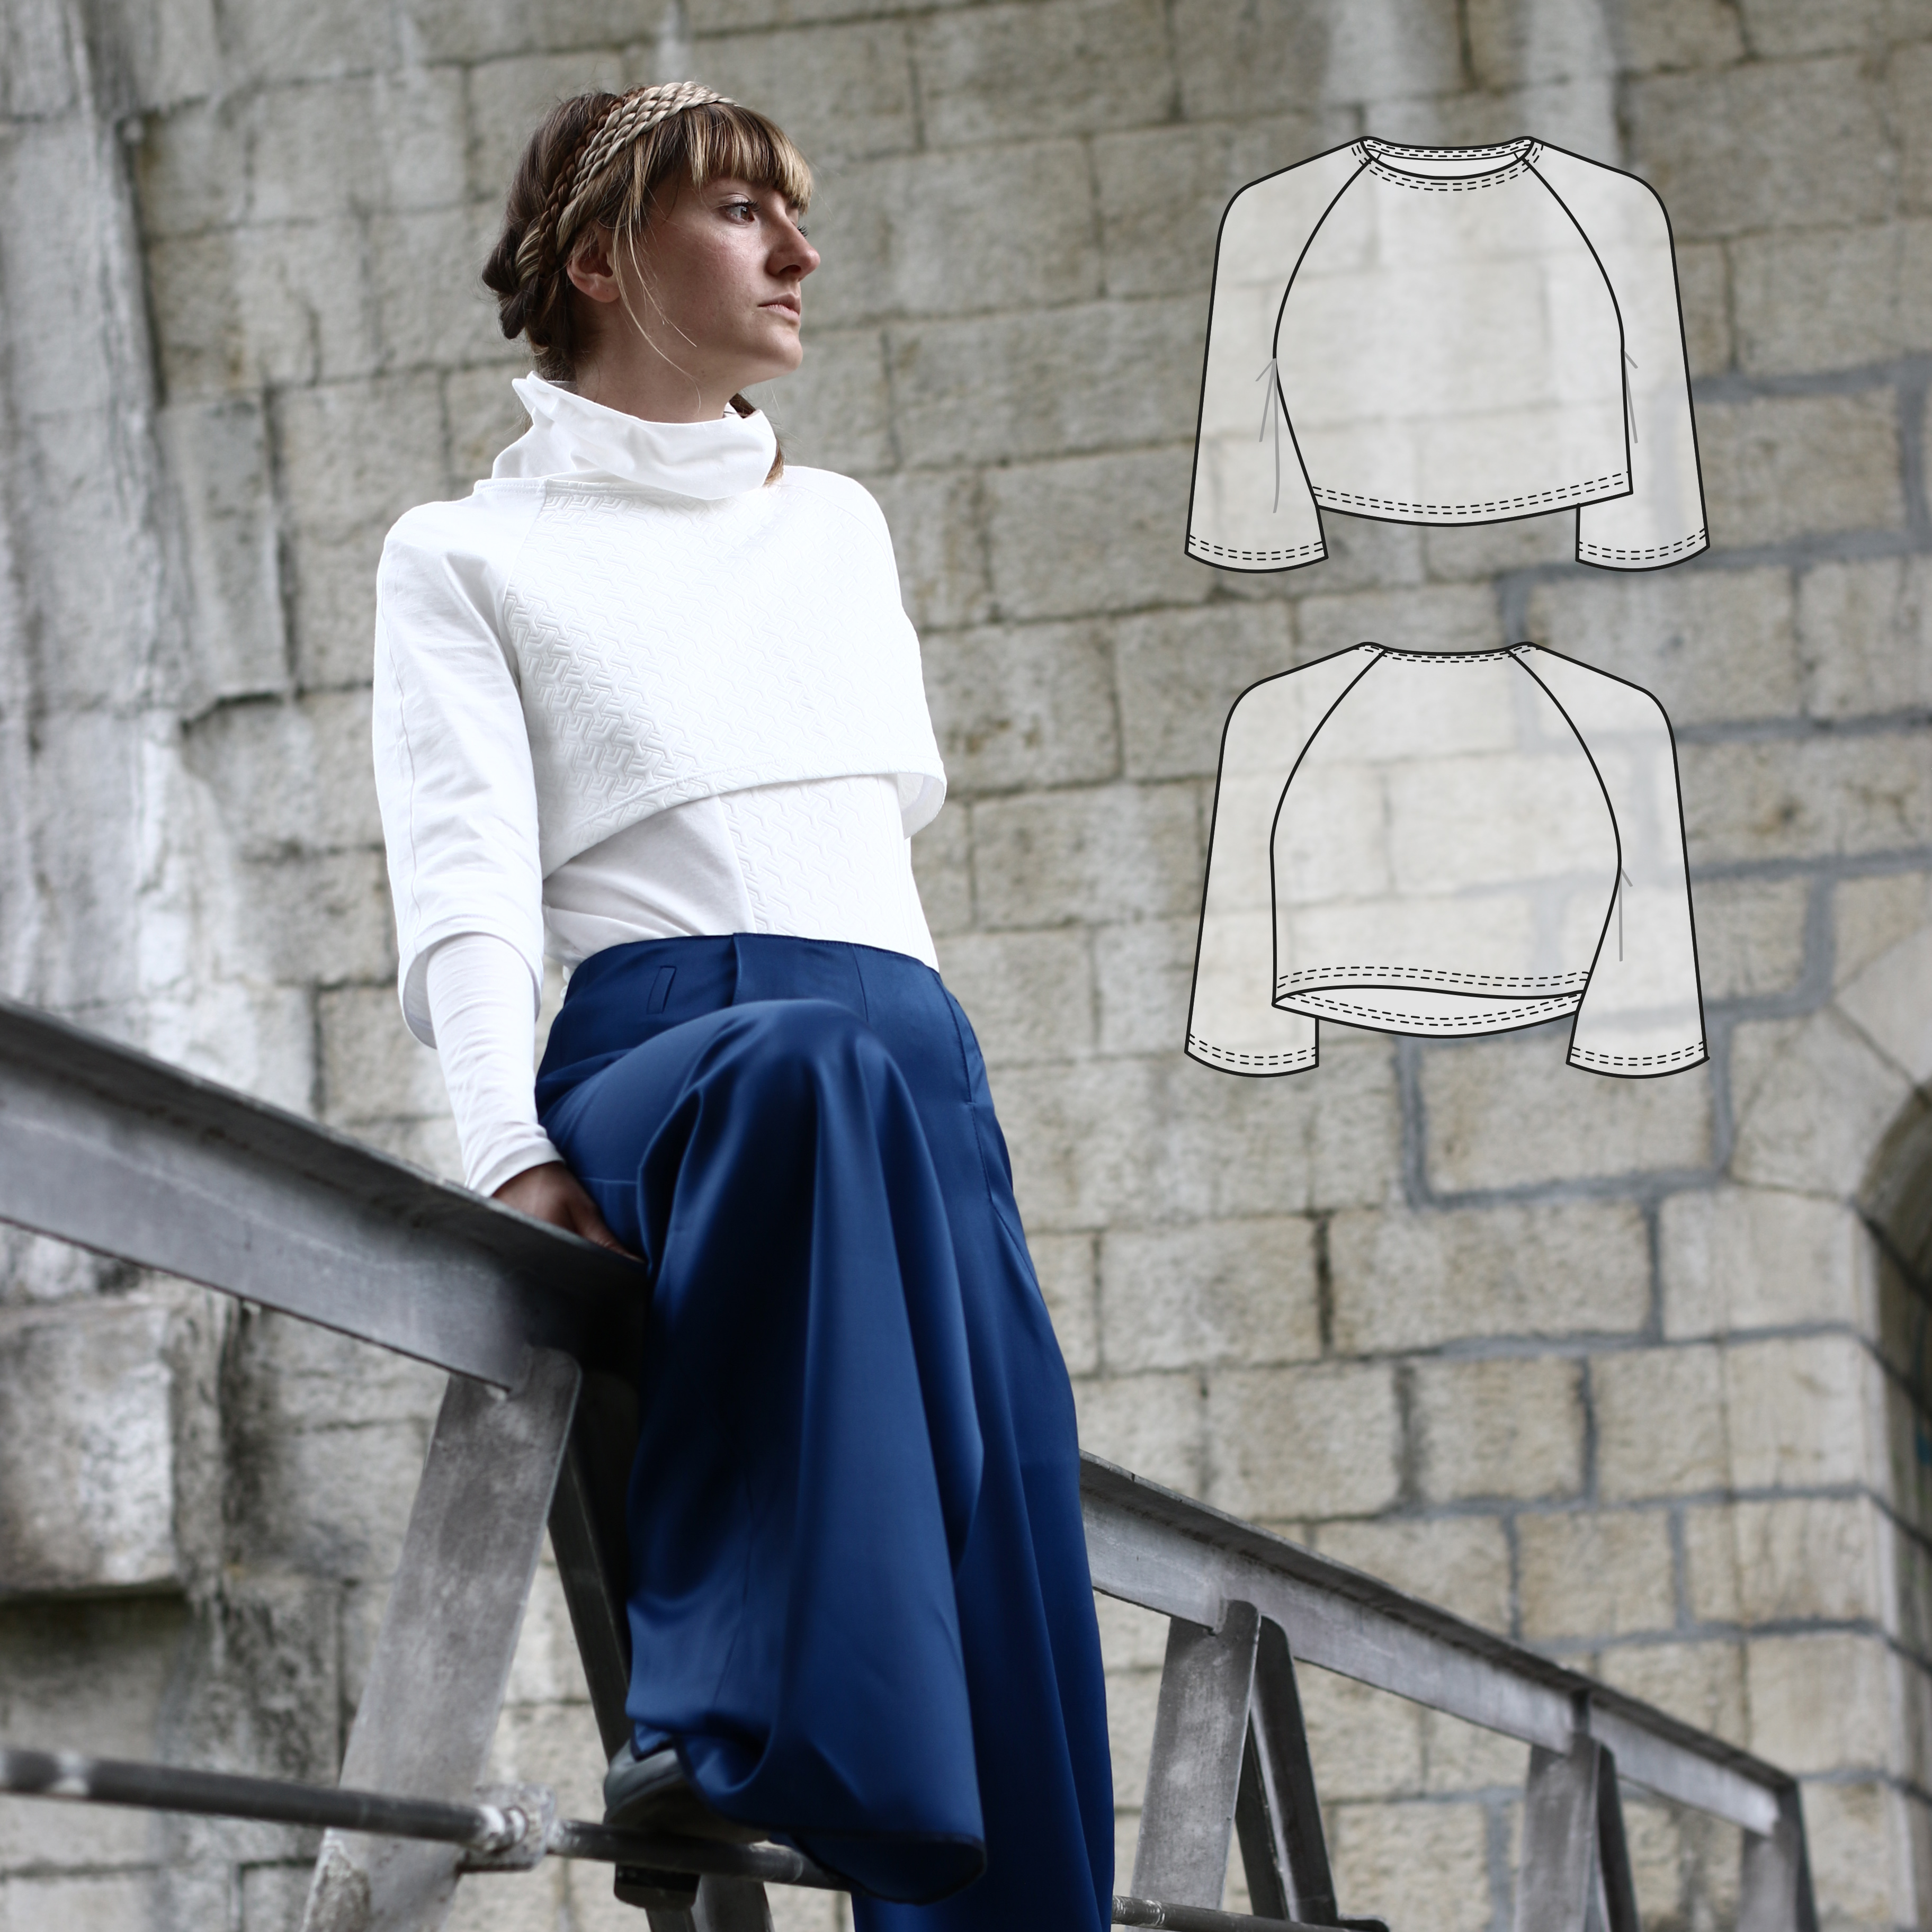 Nivis - crop top // Sewing pattern and step-by-step instructions by Wearologie